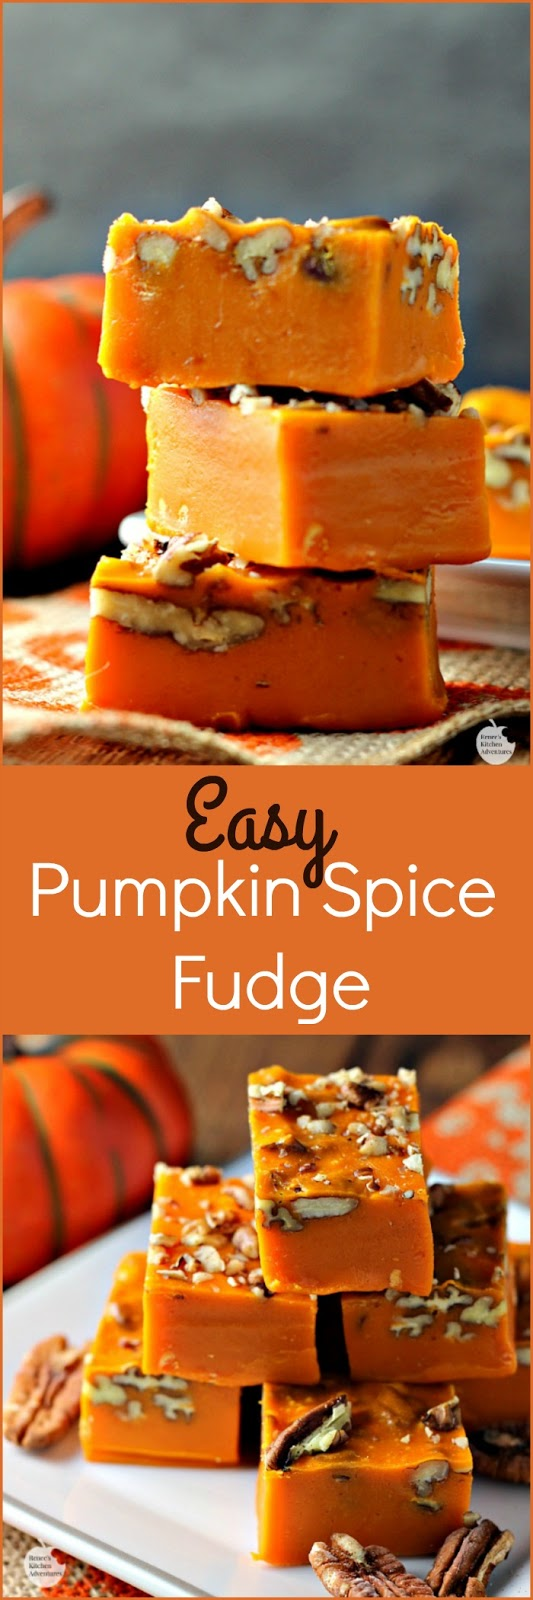 Easy Pumpkin Spice Pecan Fudge